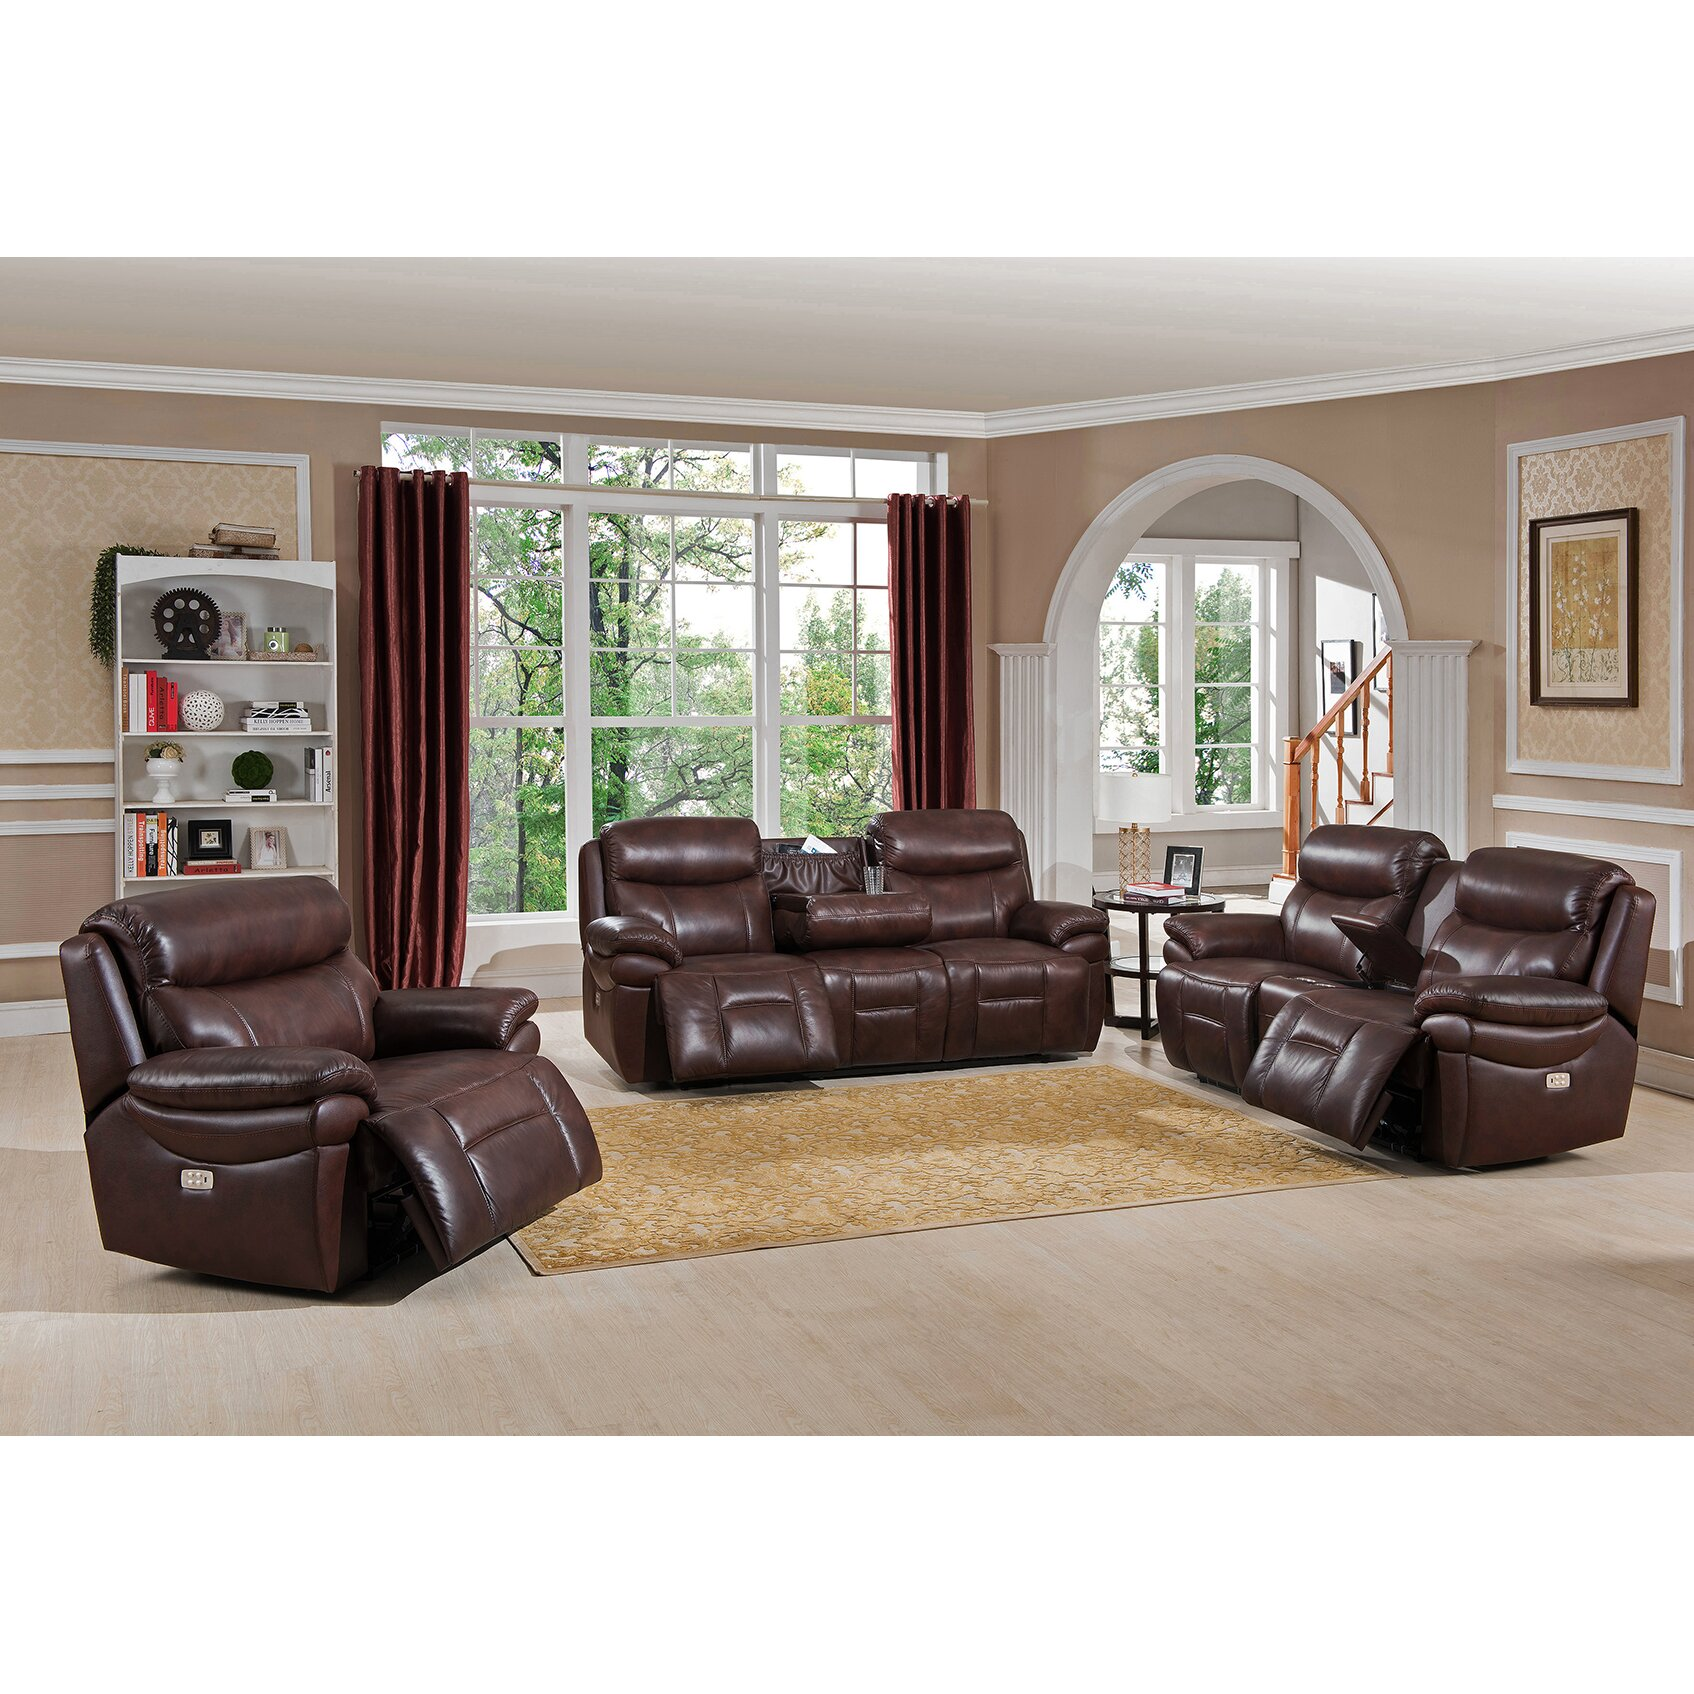 Amax sanford 3 piece leather power reclining living room for Living room 3 piece sets